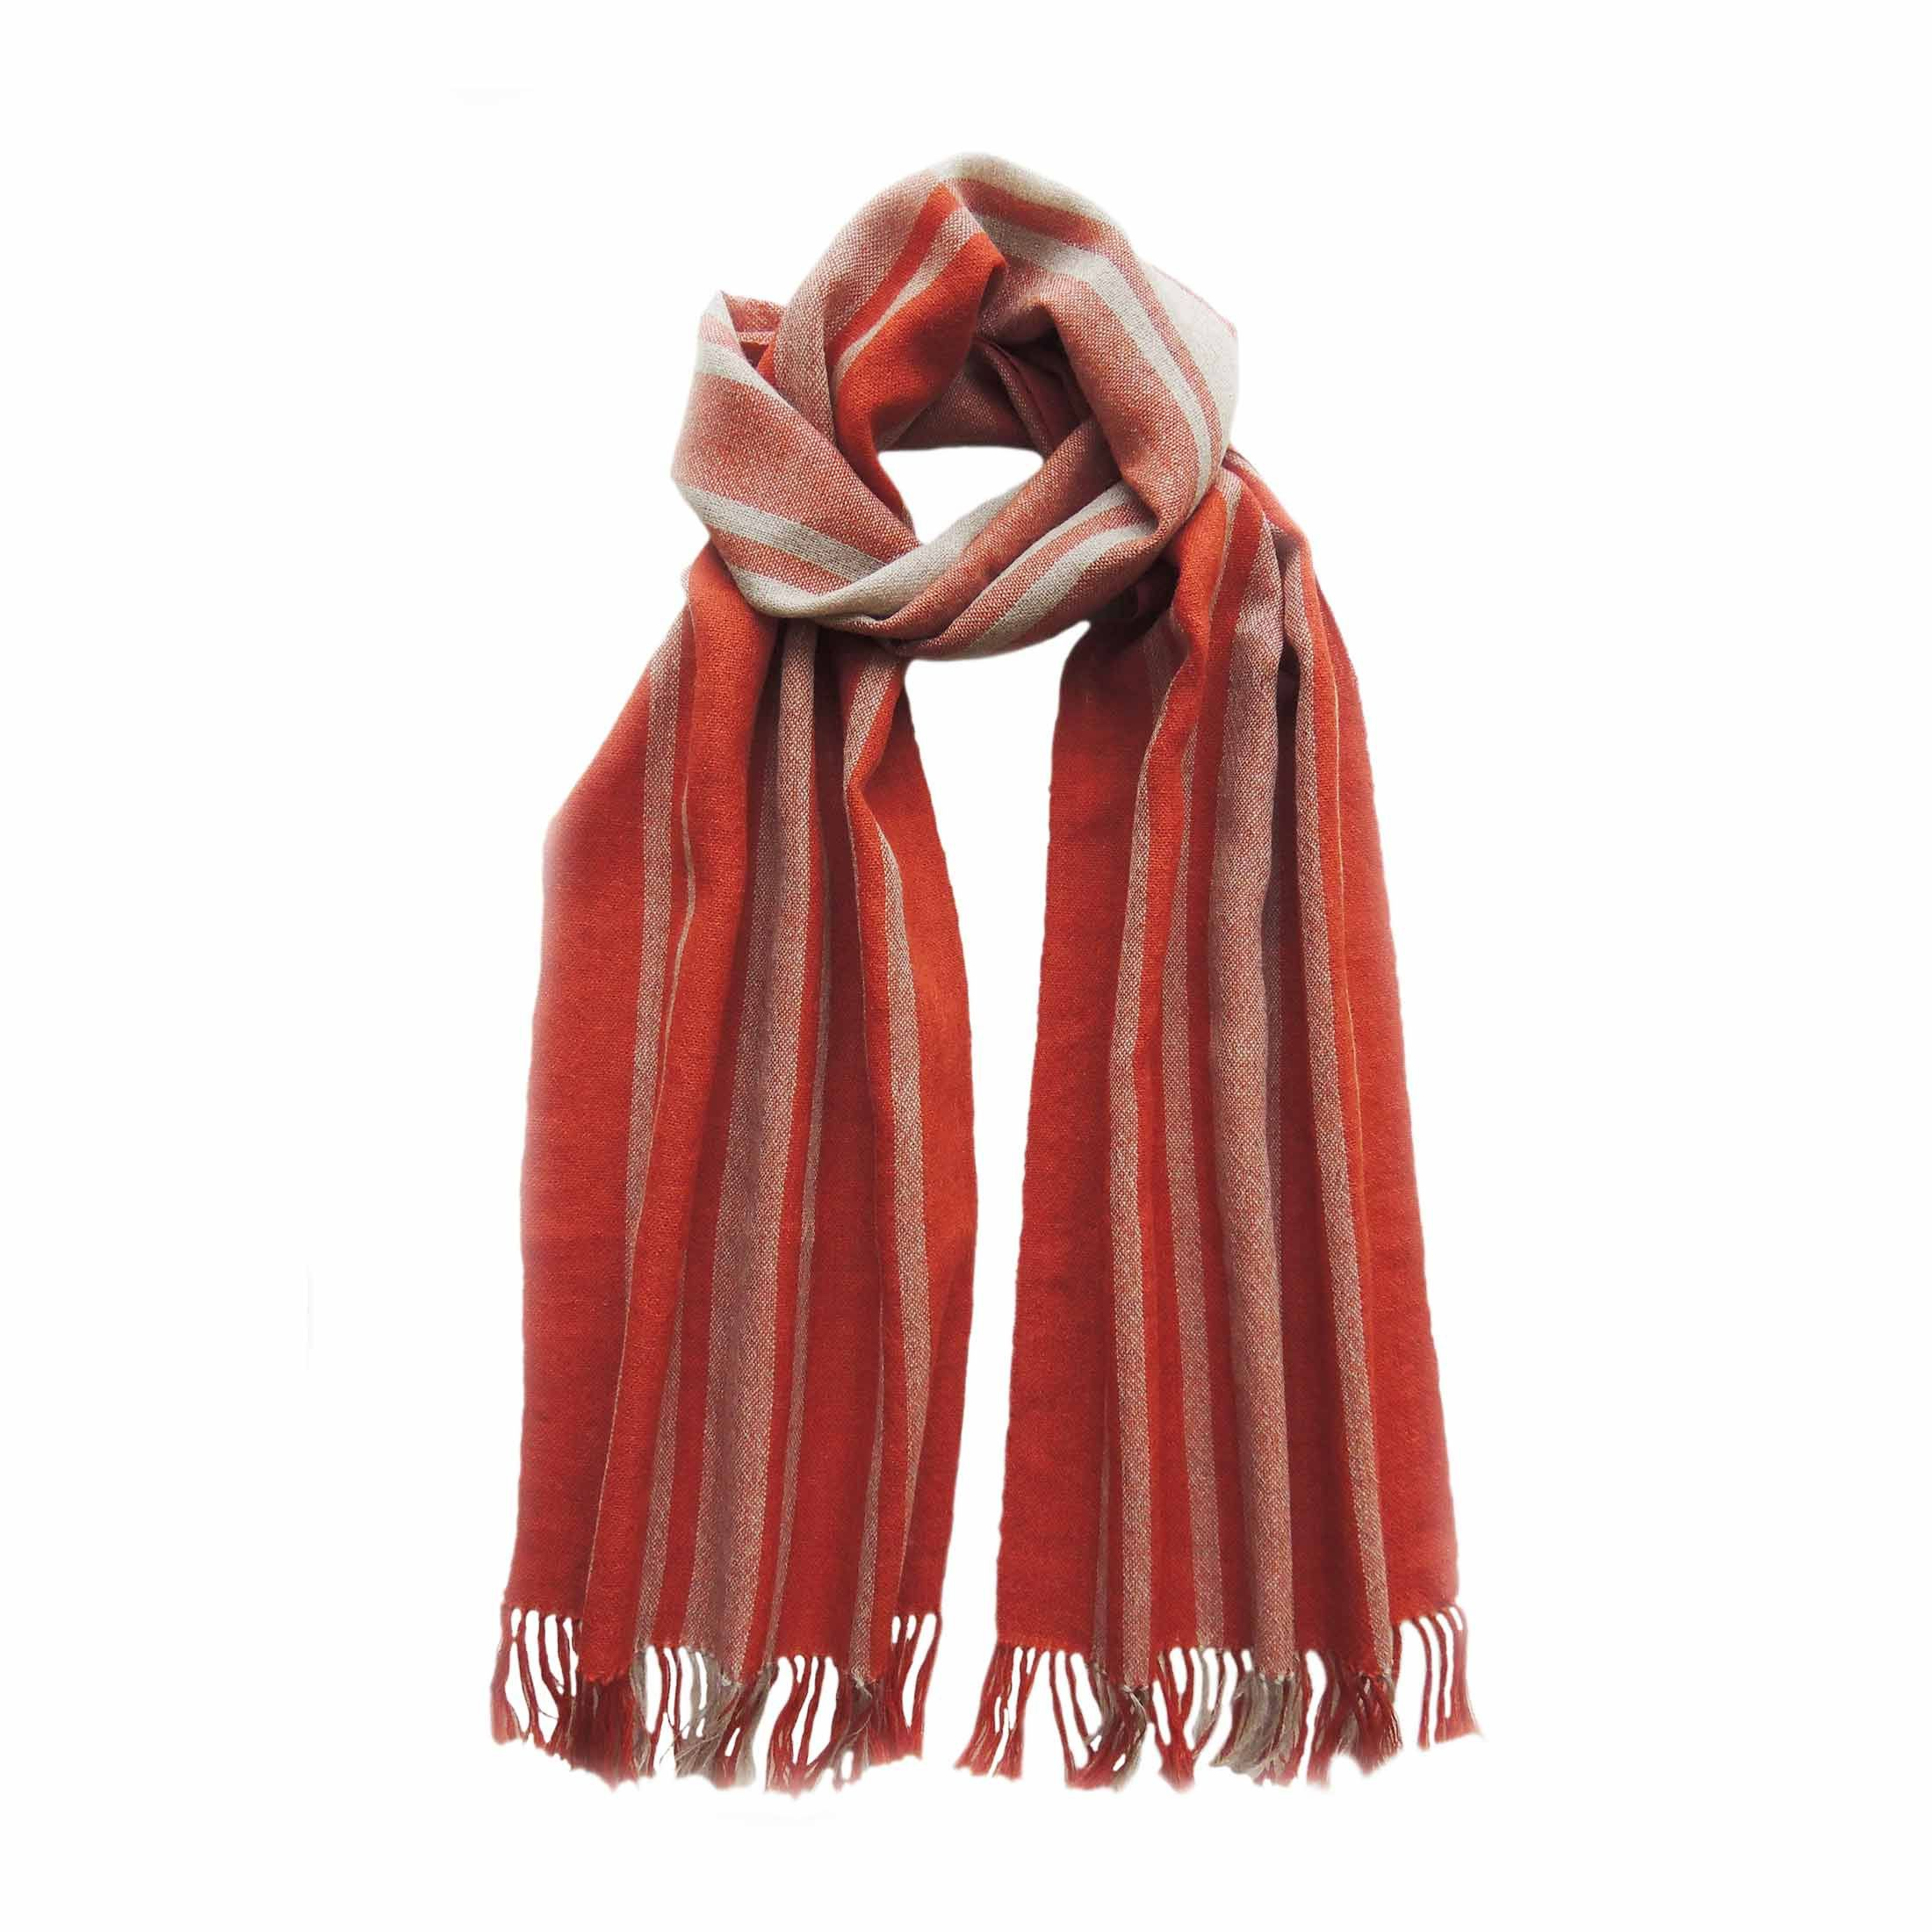 Women S Scarf Fine Handwoven 100 Baby Alpaca With Stripe Etsy In 2020 Baby Alpaca Handwoven Scarf Womens Scarves